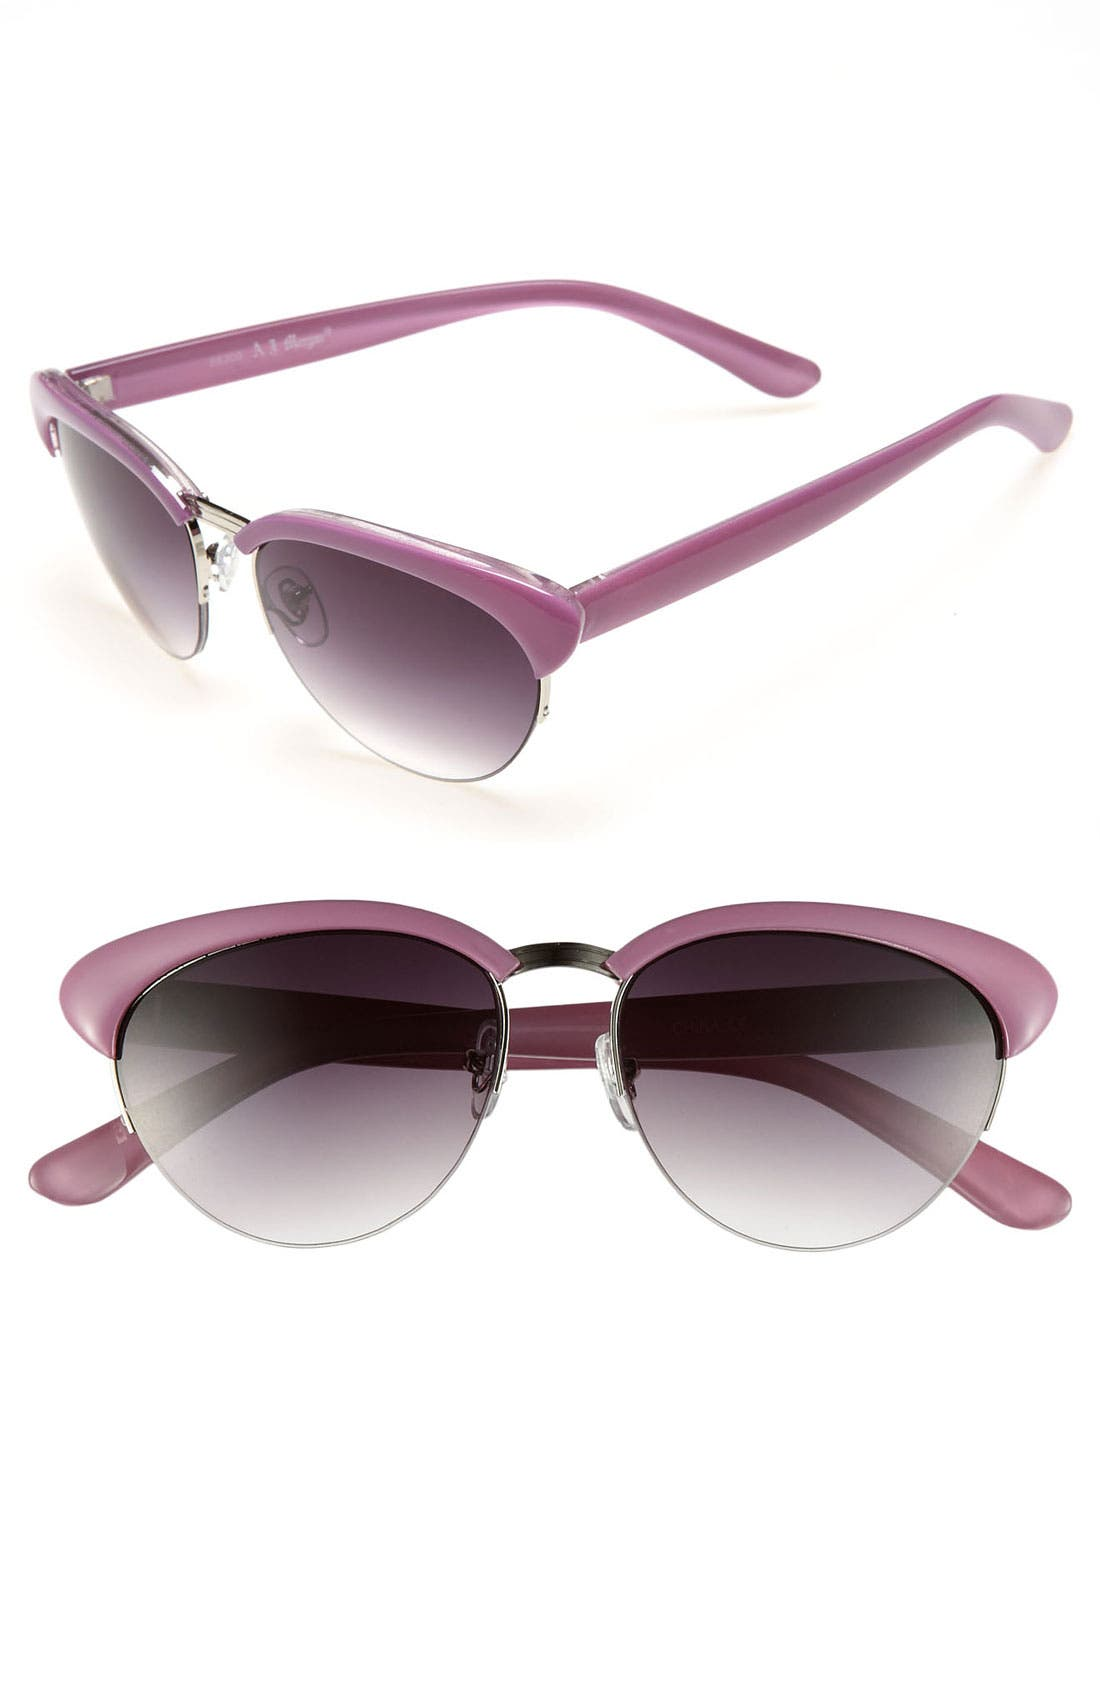 Alternate Image 1 Selected - A.J. Morgan 'Cupcake' Sunglasses